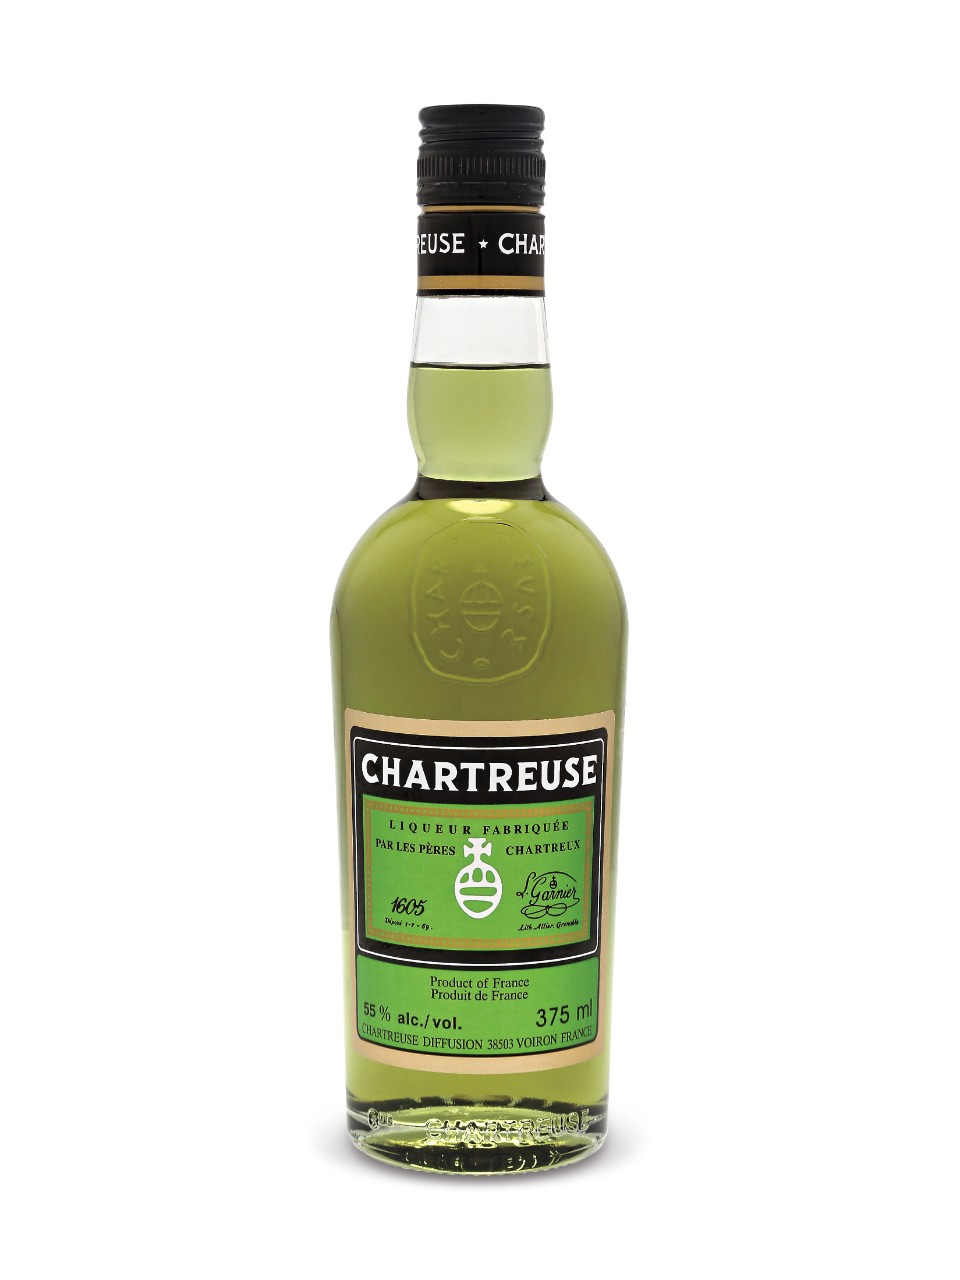 Dating chartreuse liquor